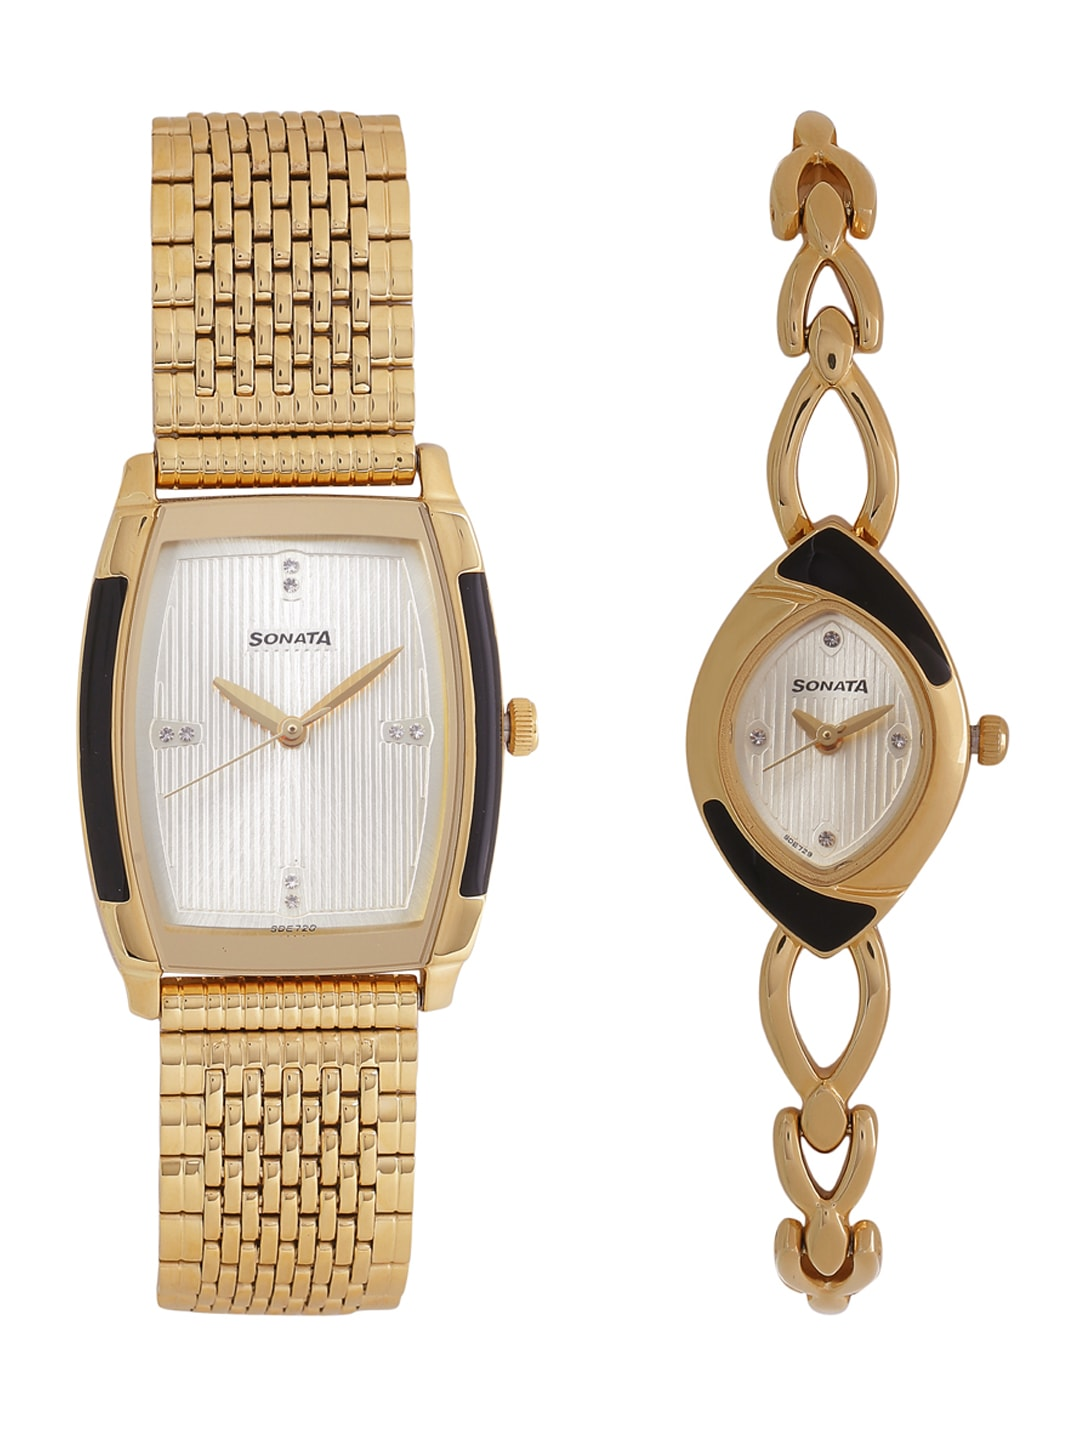 Sonata Men Silver-Toned Set of 2 His & Her Analogue Watch NK70808069YM01 image